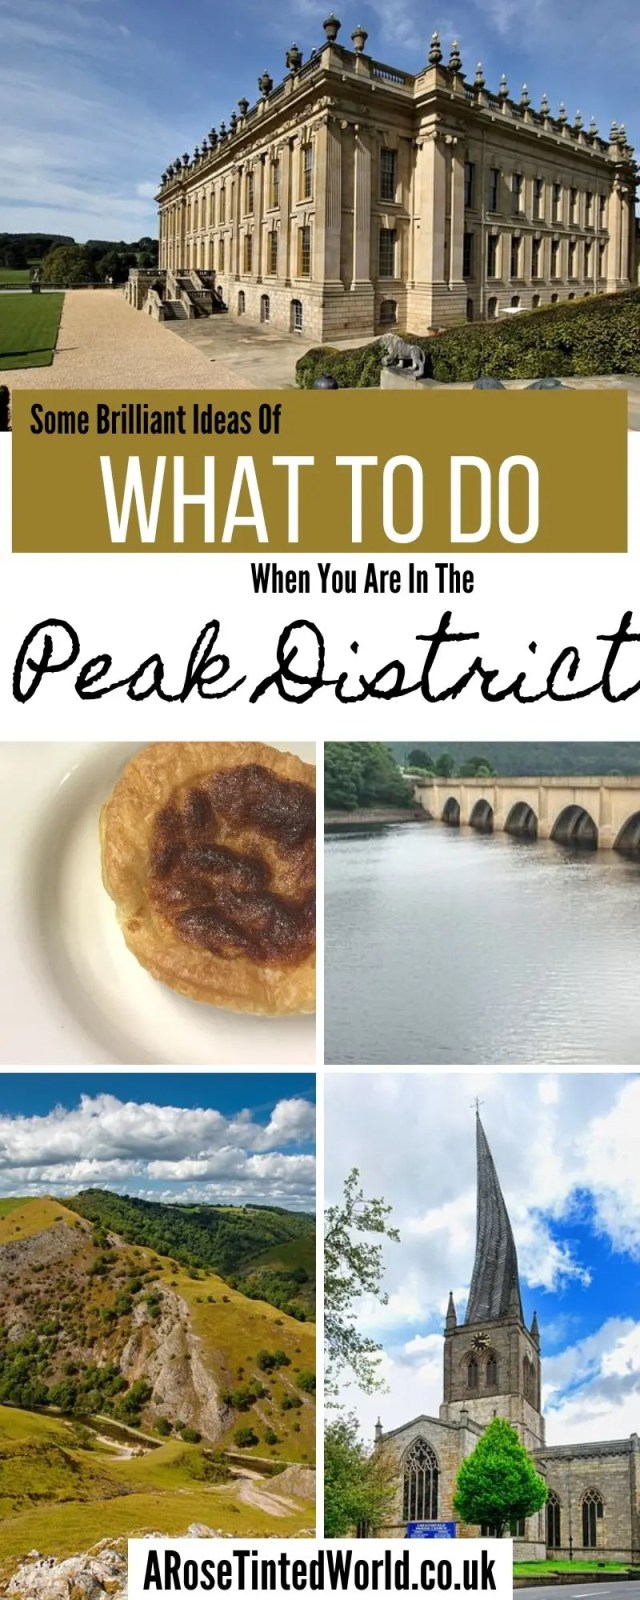 Things You Need To Do When In The Peak District - here are our recomendations for places and attraction to see in the Derbyshire countryside and the Peak district. See historic places and spectacular scenery #peakdistrict #visitderbyshire #historicplaces #historichomes #chatsworth #thingstodo #placestovisit #placestogo #placestotravel #haddonhall #chesterfield